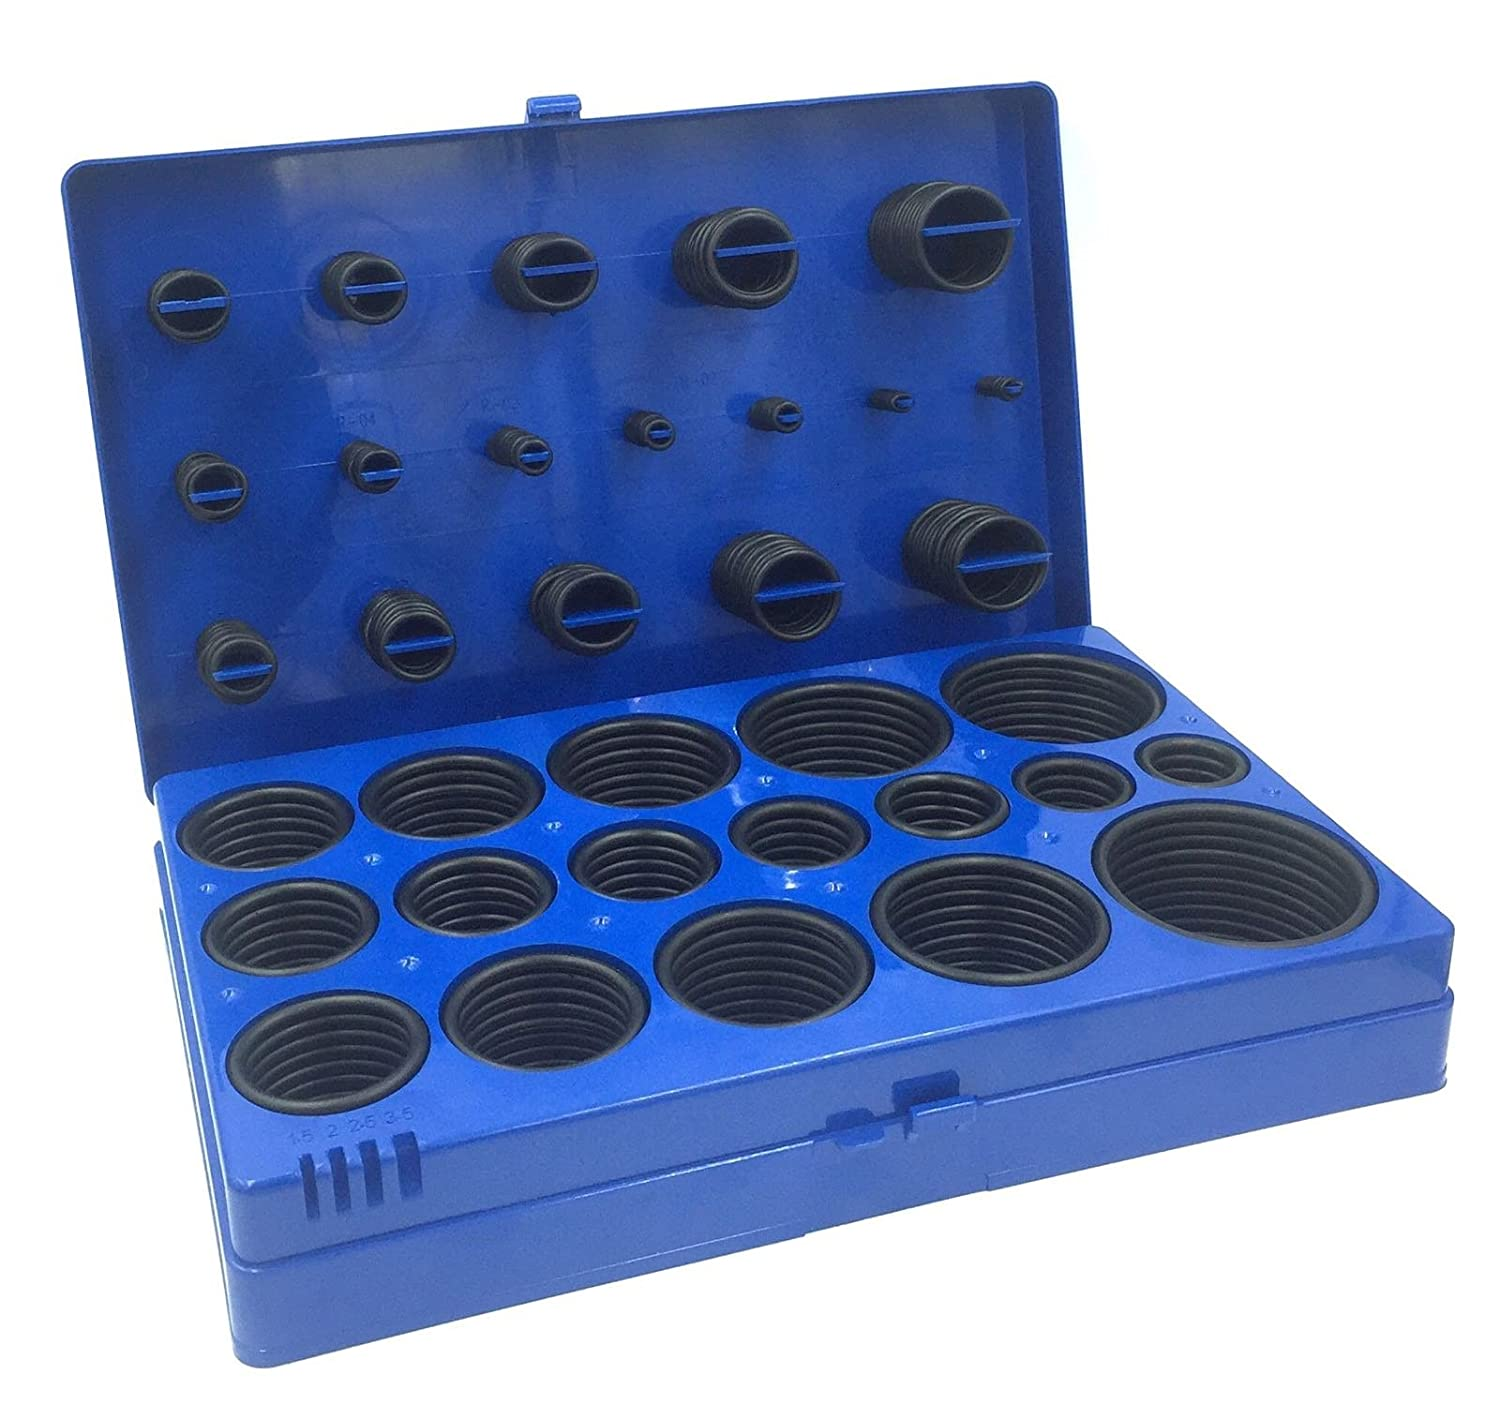 BRUFER 685153 O-Ring Assortment, 419-Piece Metric Set with Case